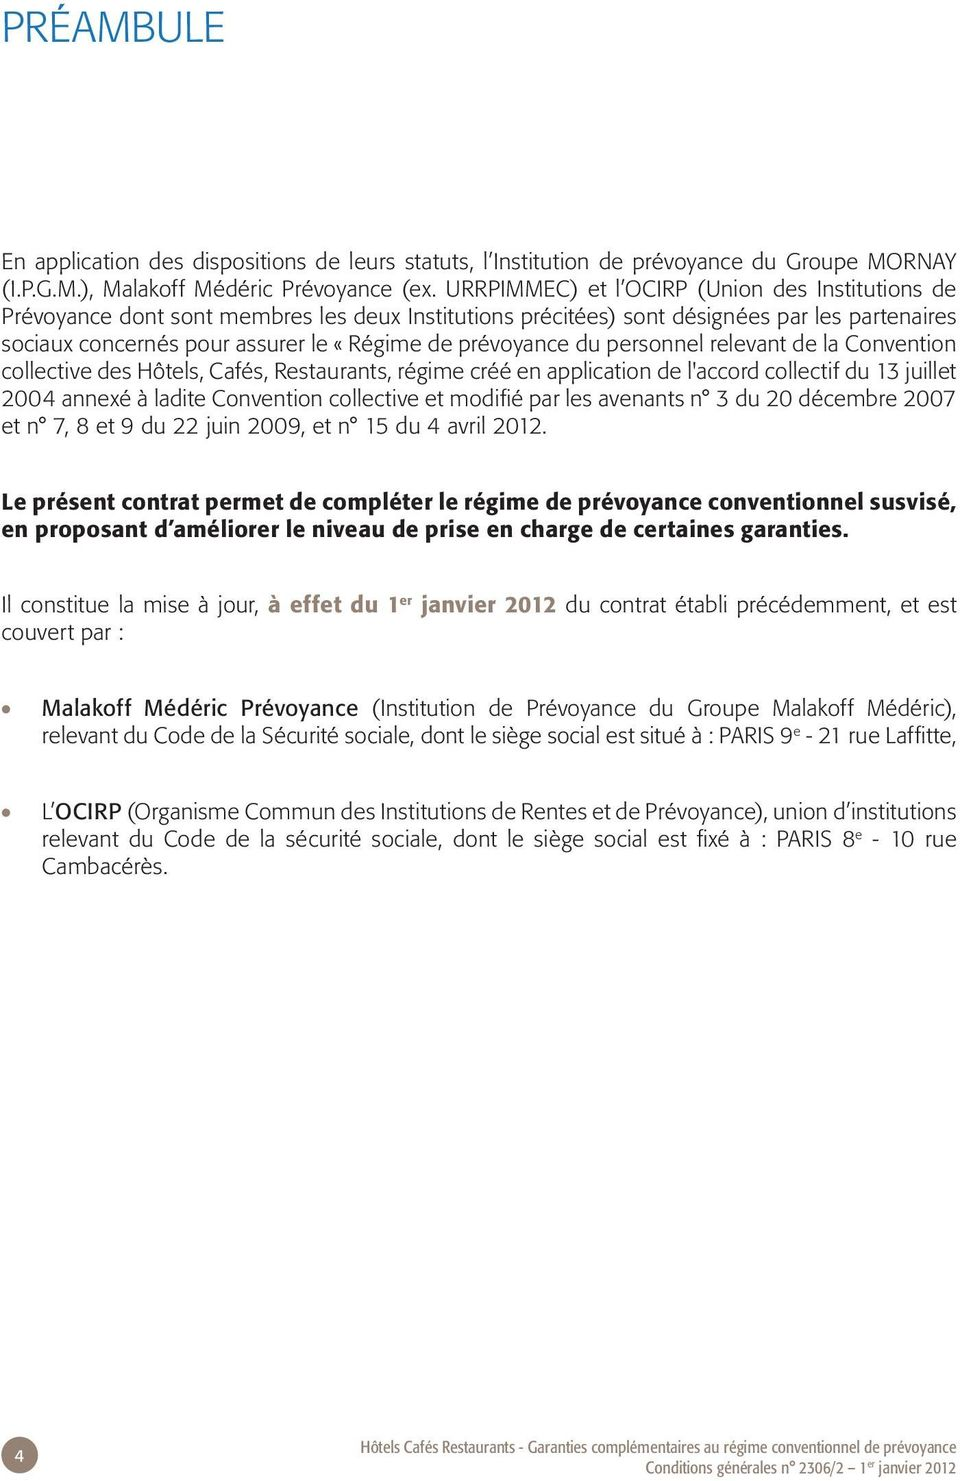 prévoyance du personnel relevant de la Convention collective des Hôtels, Cafés, Restaurants, régime créé en application de l'accord collectif du 13 juillet 2004 annexé à ladite Convention collective